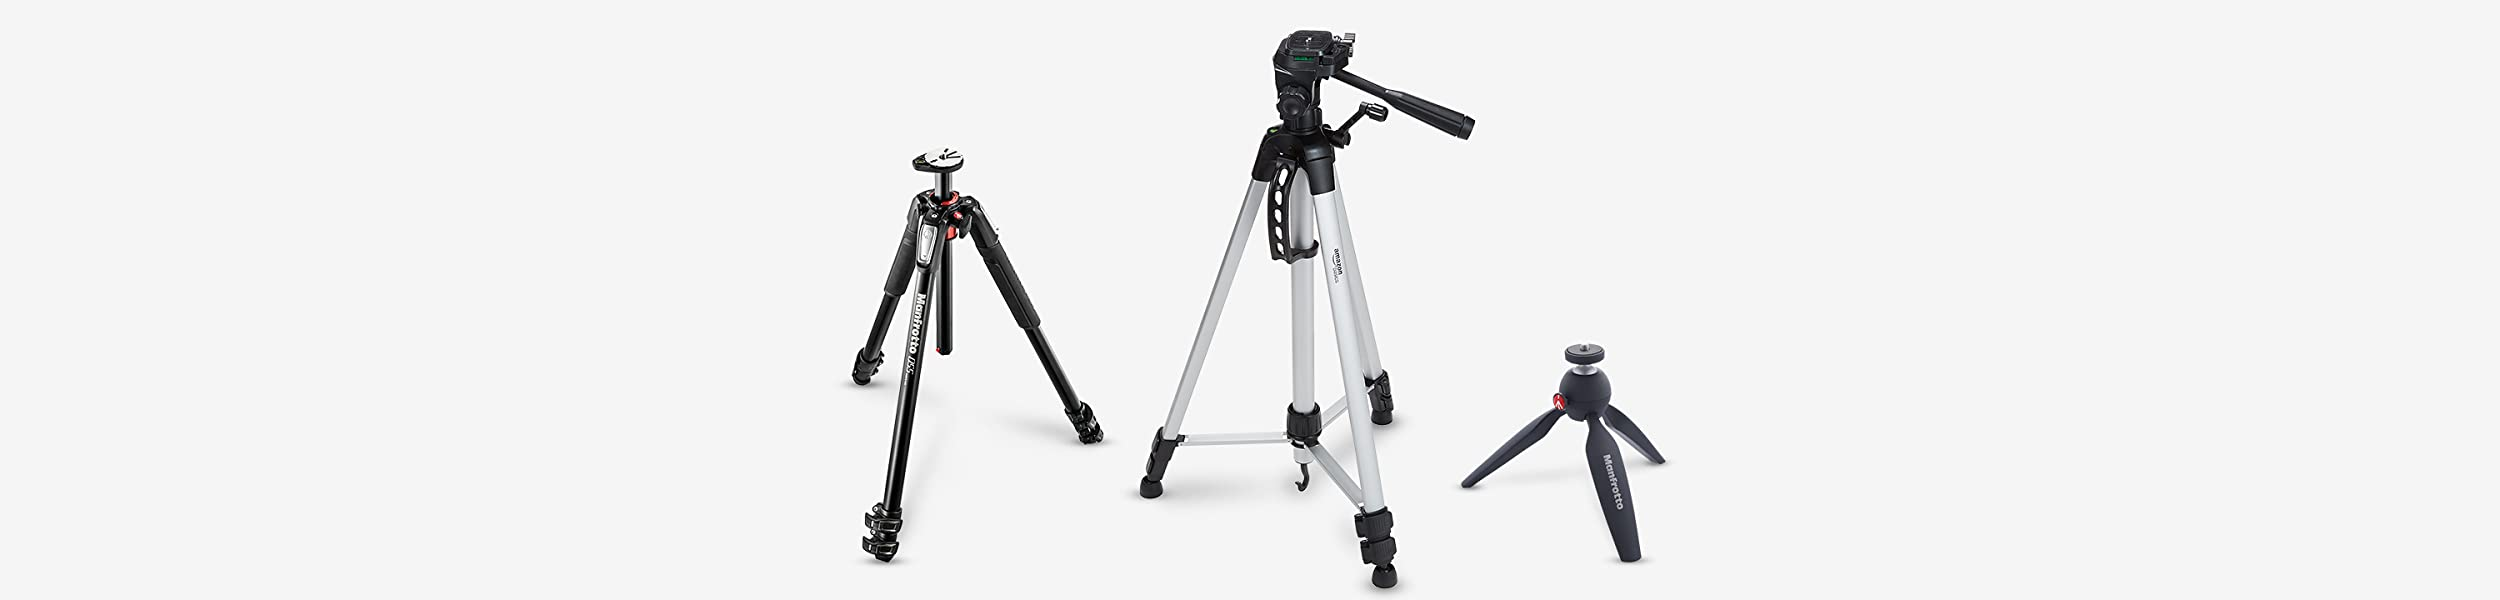 Top rated camera tripods